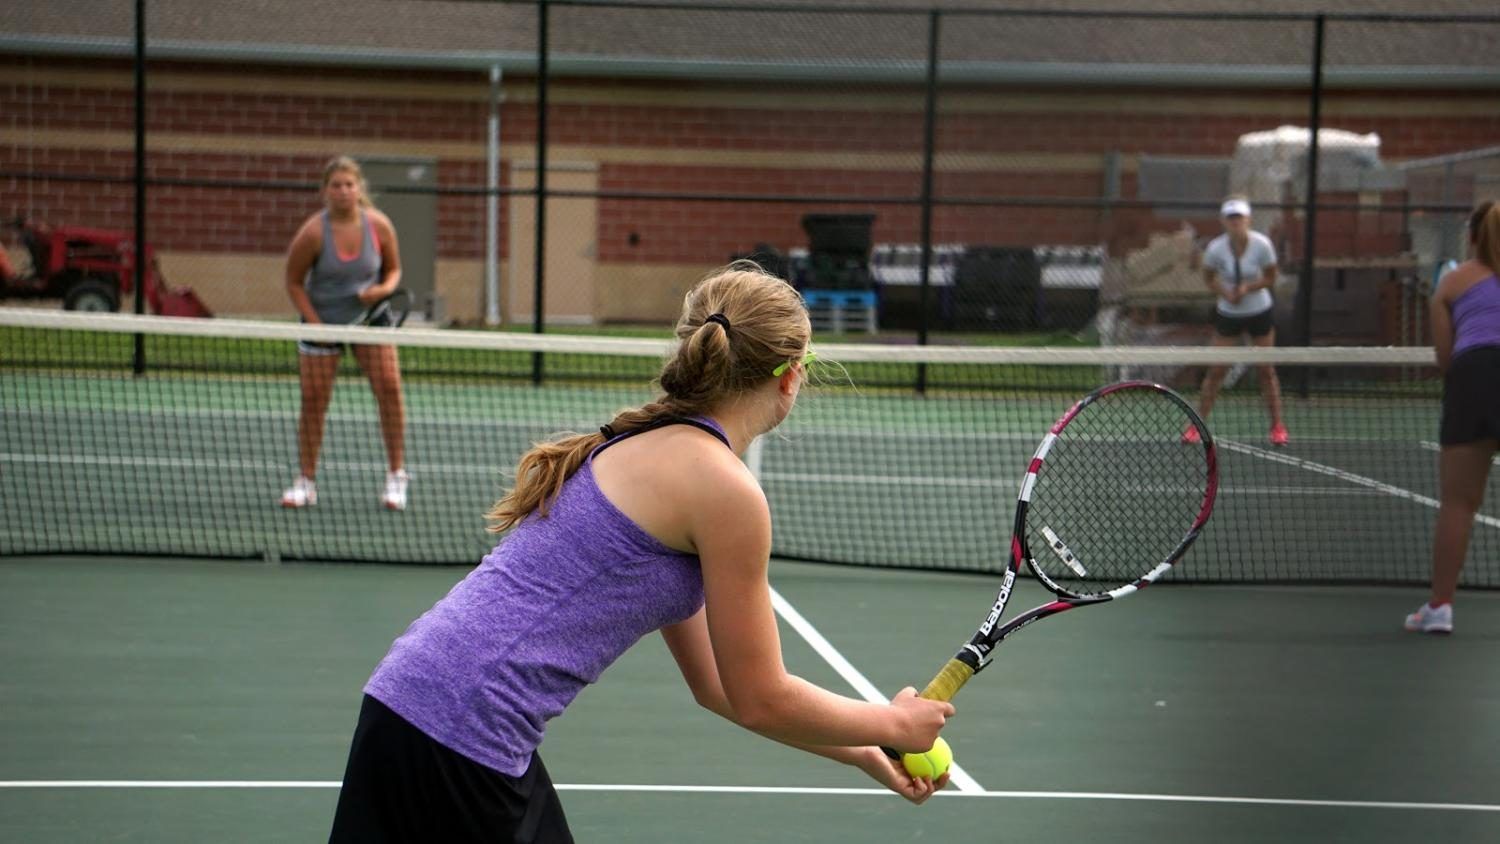 During+the+first+tennis+match+of+the+season%2C+KayLee+Mitchell%2C+12%2C+sets+up+for+a+serve.+The+Lady+Broncos+defeated+Lansing+in+both+varsity+and+Jr.+Varsity+matches.+%28photo+by+J.+Barnett%29+++